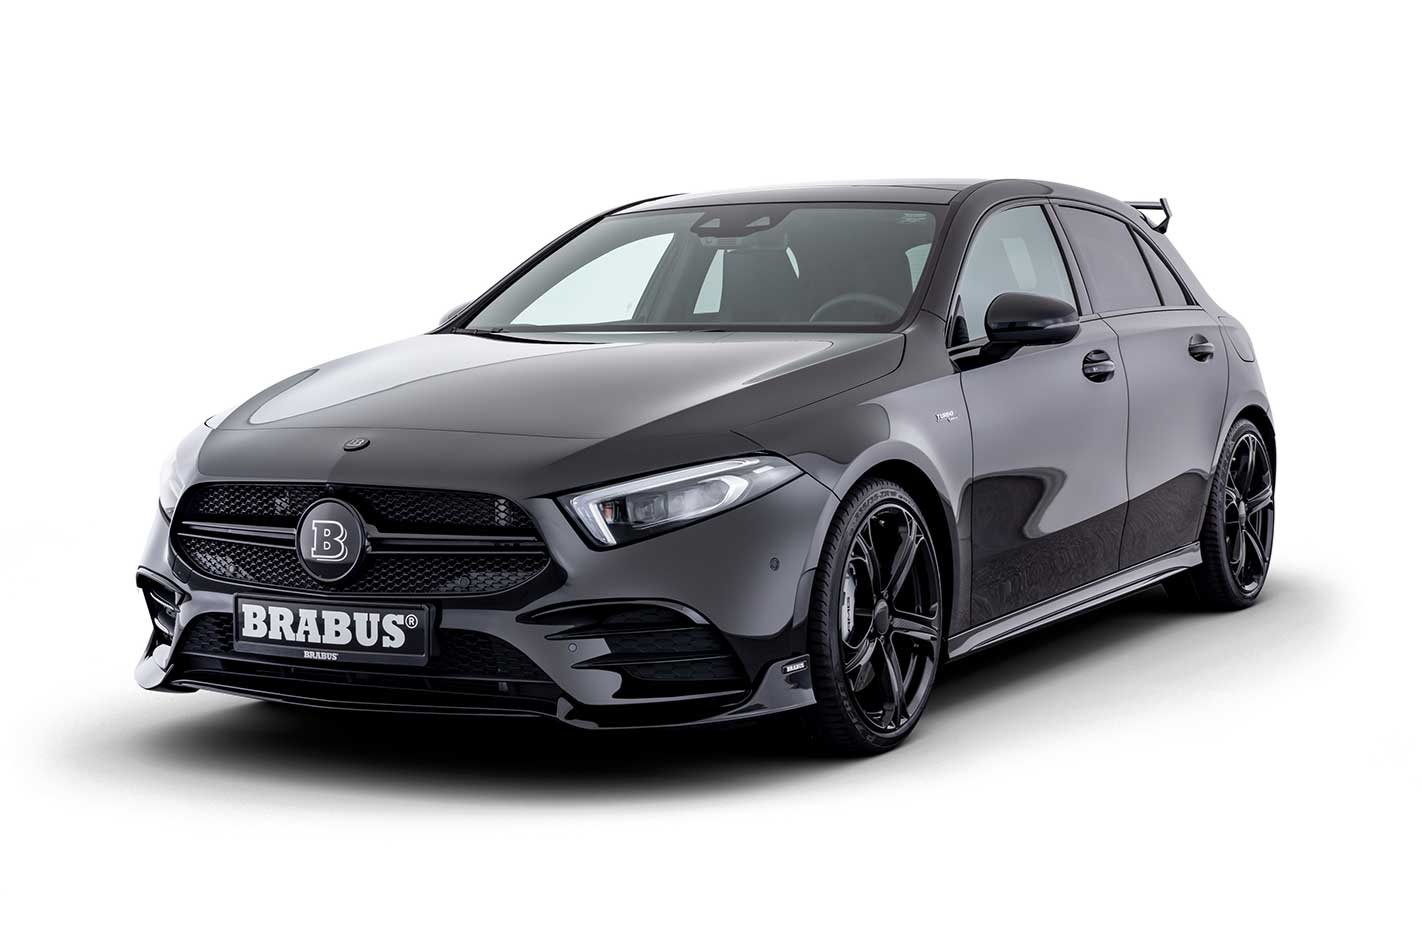 Brabus 'B35 S' is a powered-up AMG A35